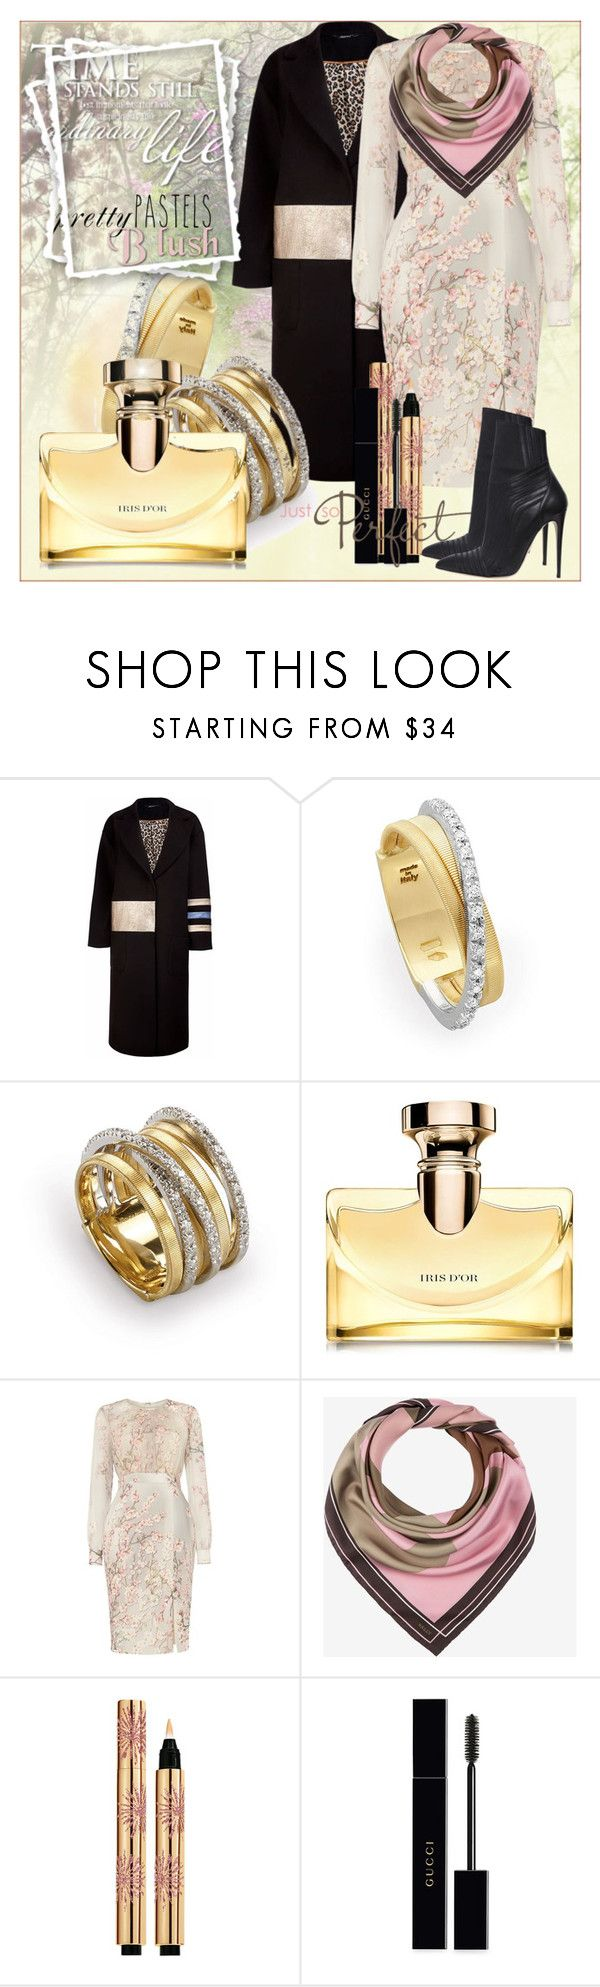 """Spring. BVLGARI IRIS D OR"" by chechetta ❤ liked on Polyvore featuring Marco Bicego, Bulgari, Phase Eight, Bally, Yves Saint Laurent, Gucci and Paul Andrew"